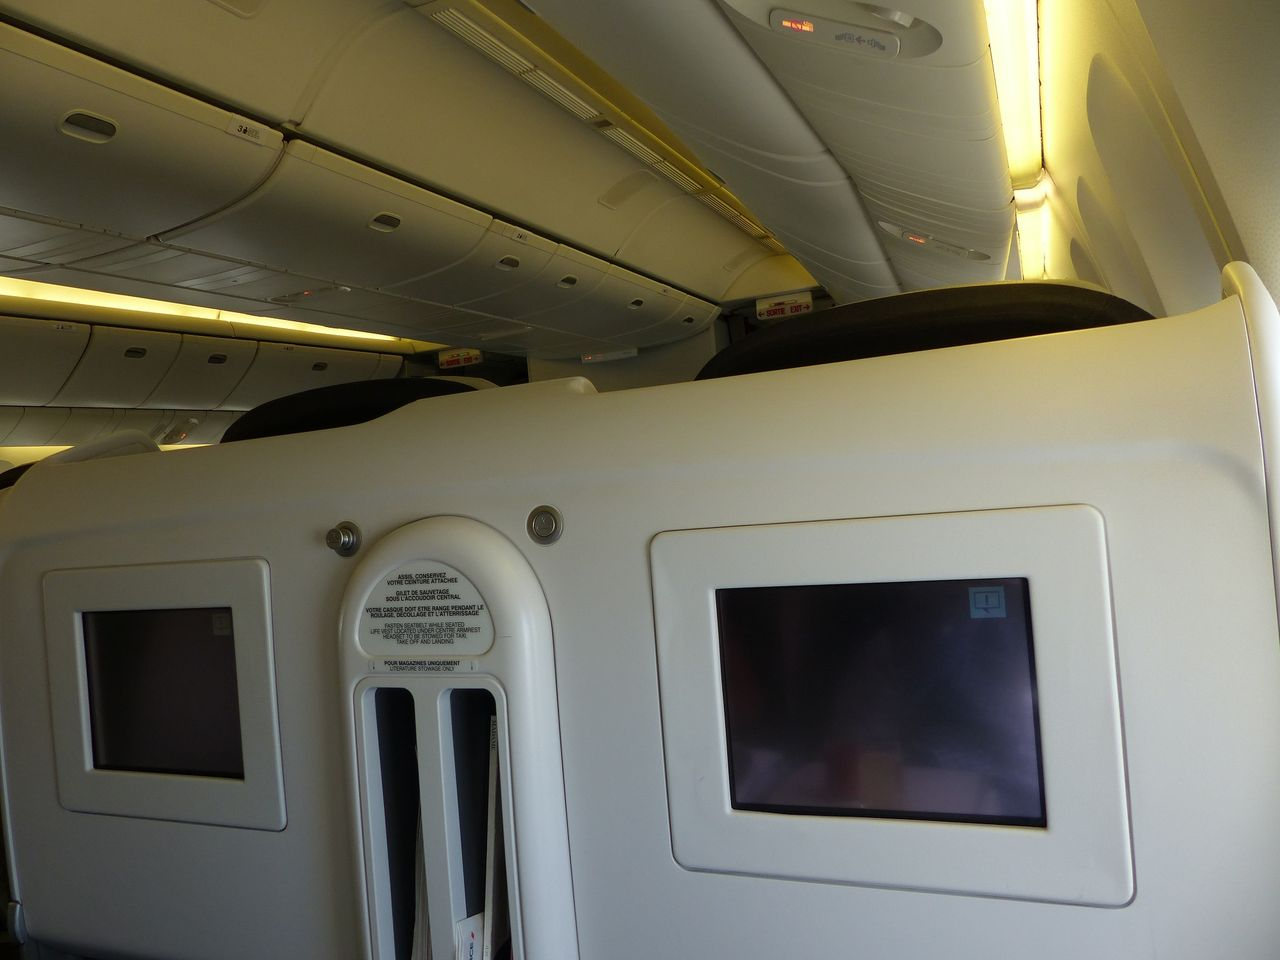 Avis du vol air france paris cayenne en affaires for Air france vol interieur